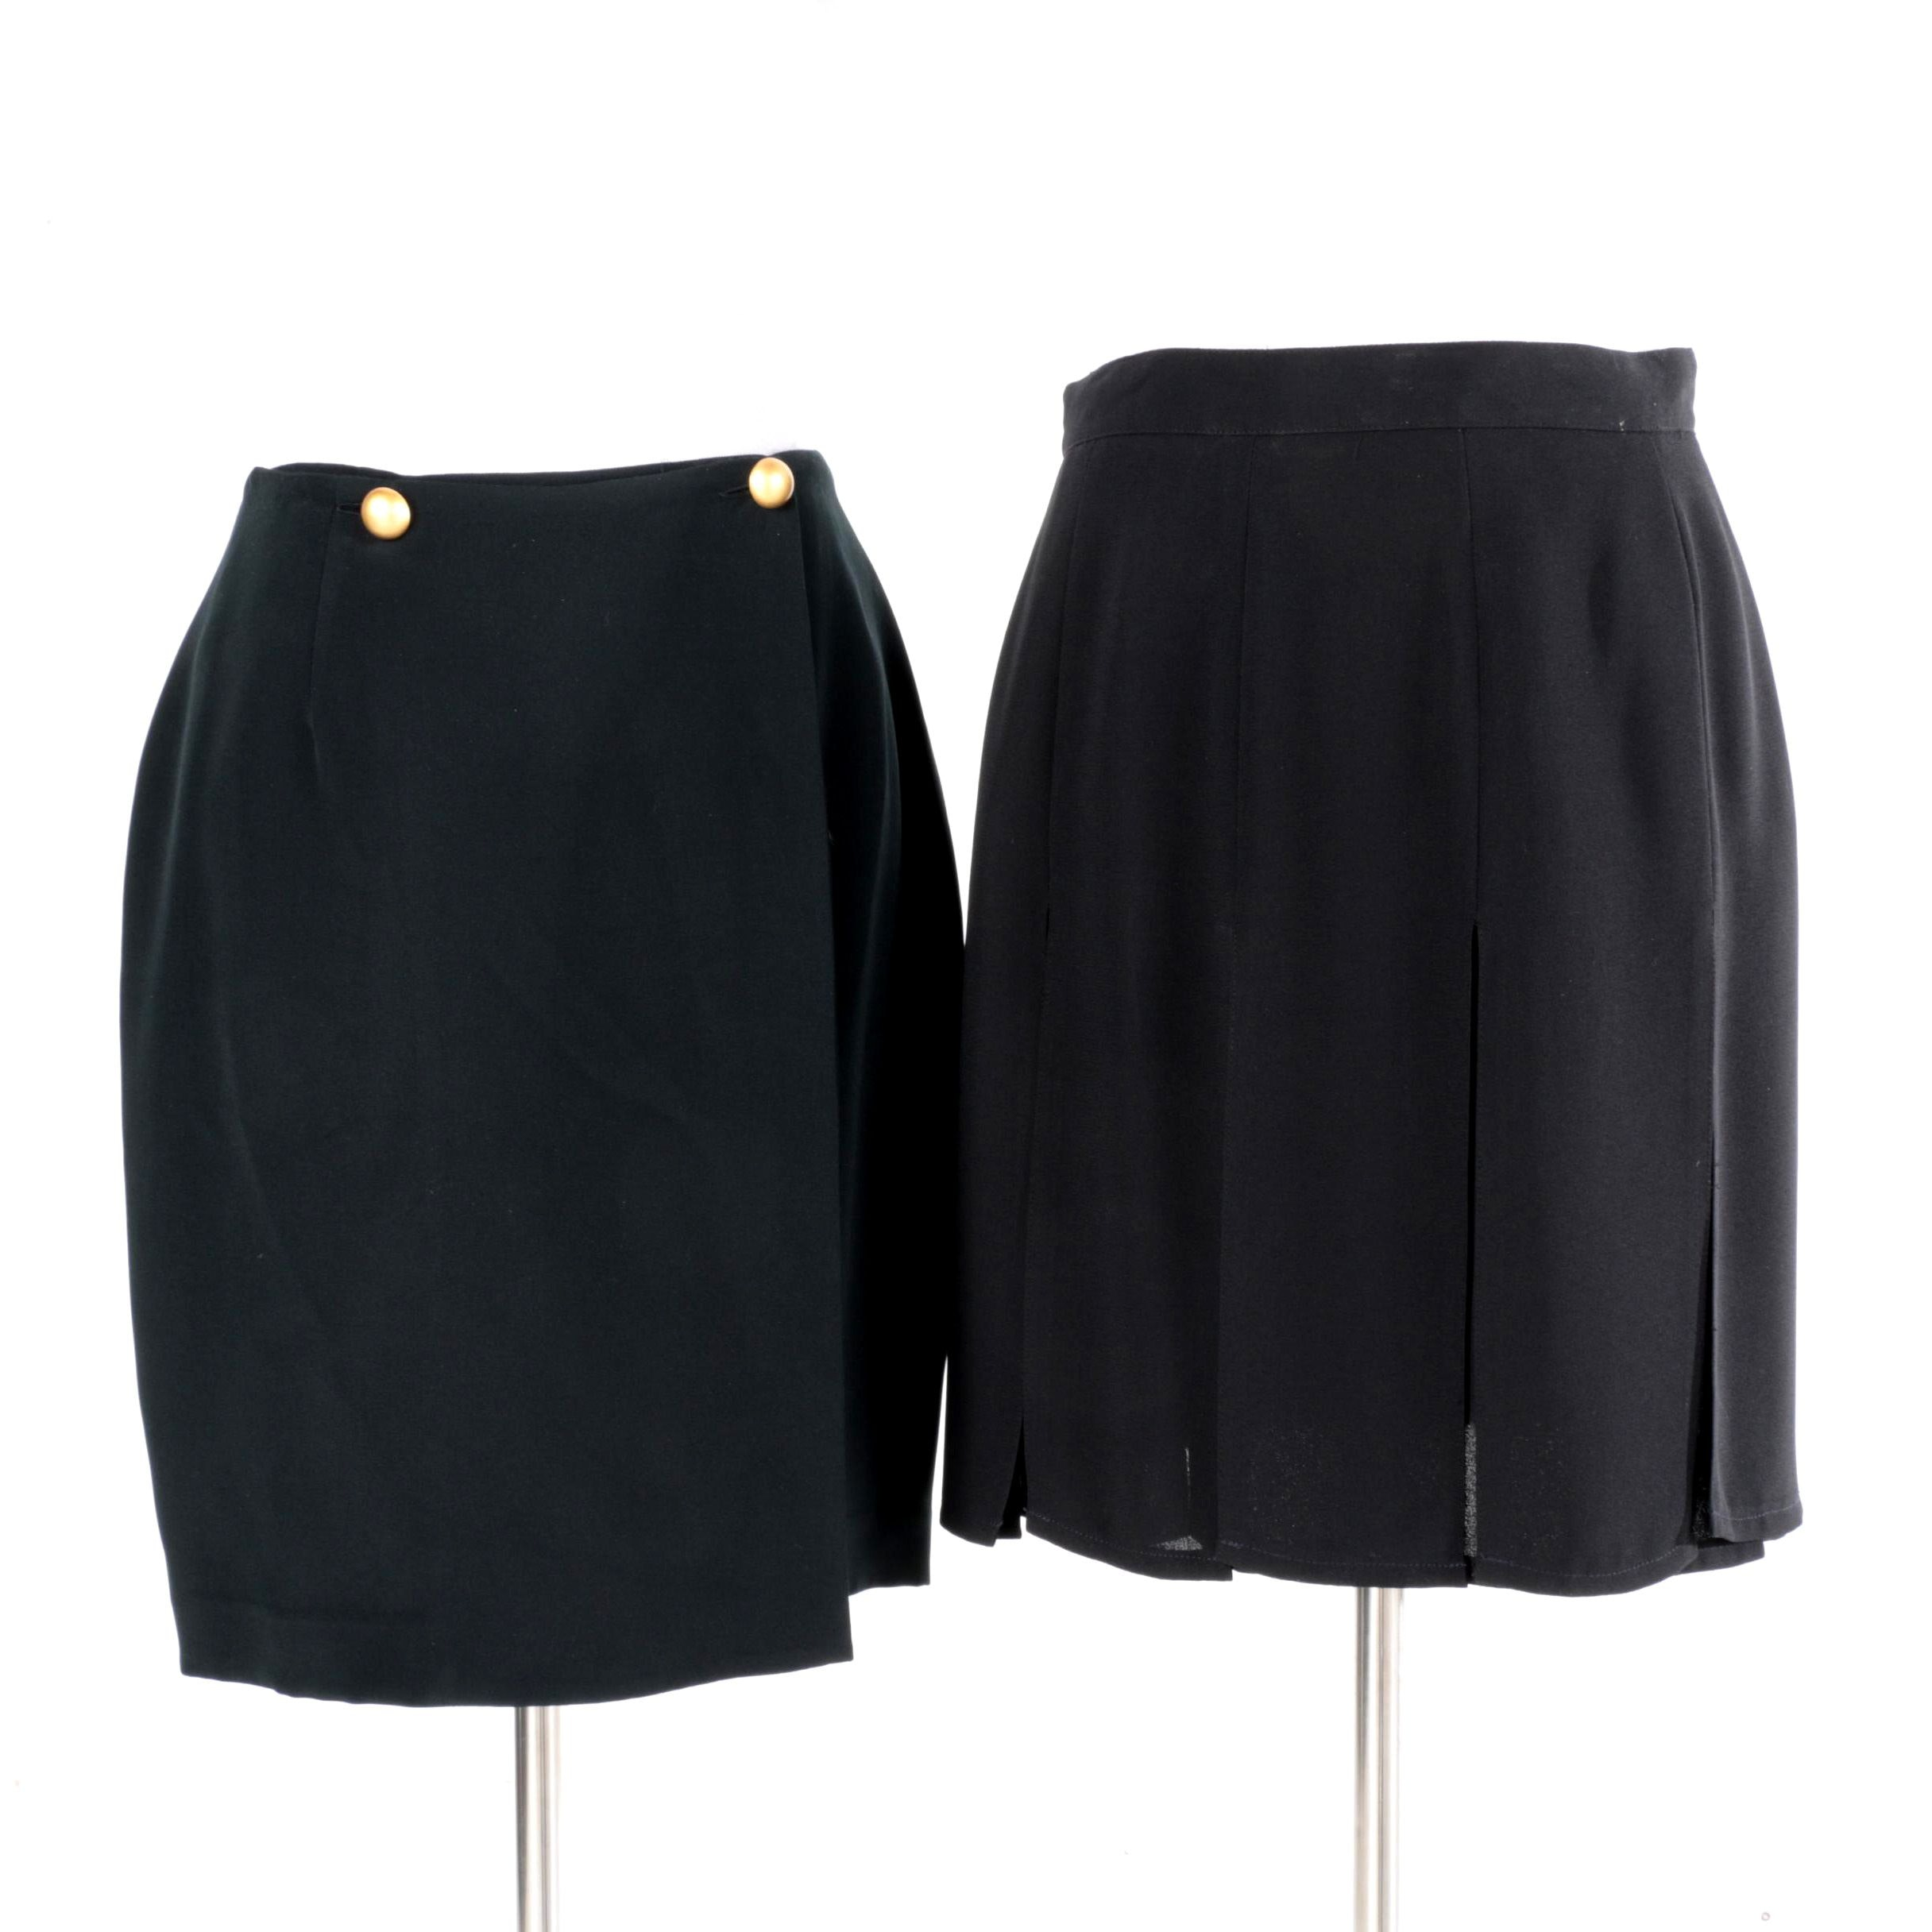 Women's Black Skirts Featuring Item... and Carmelo Pomodoro